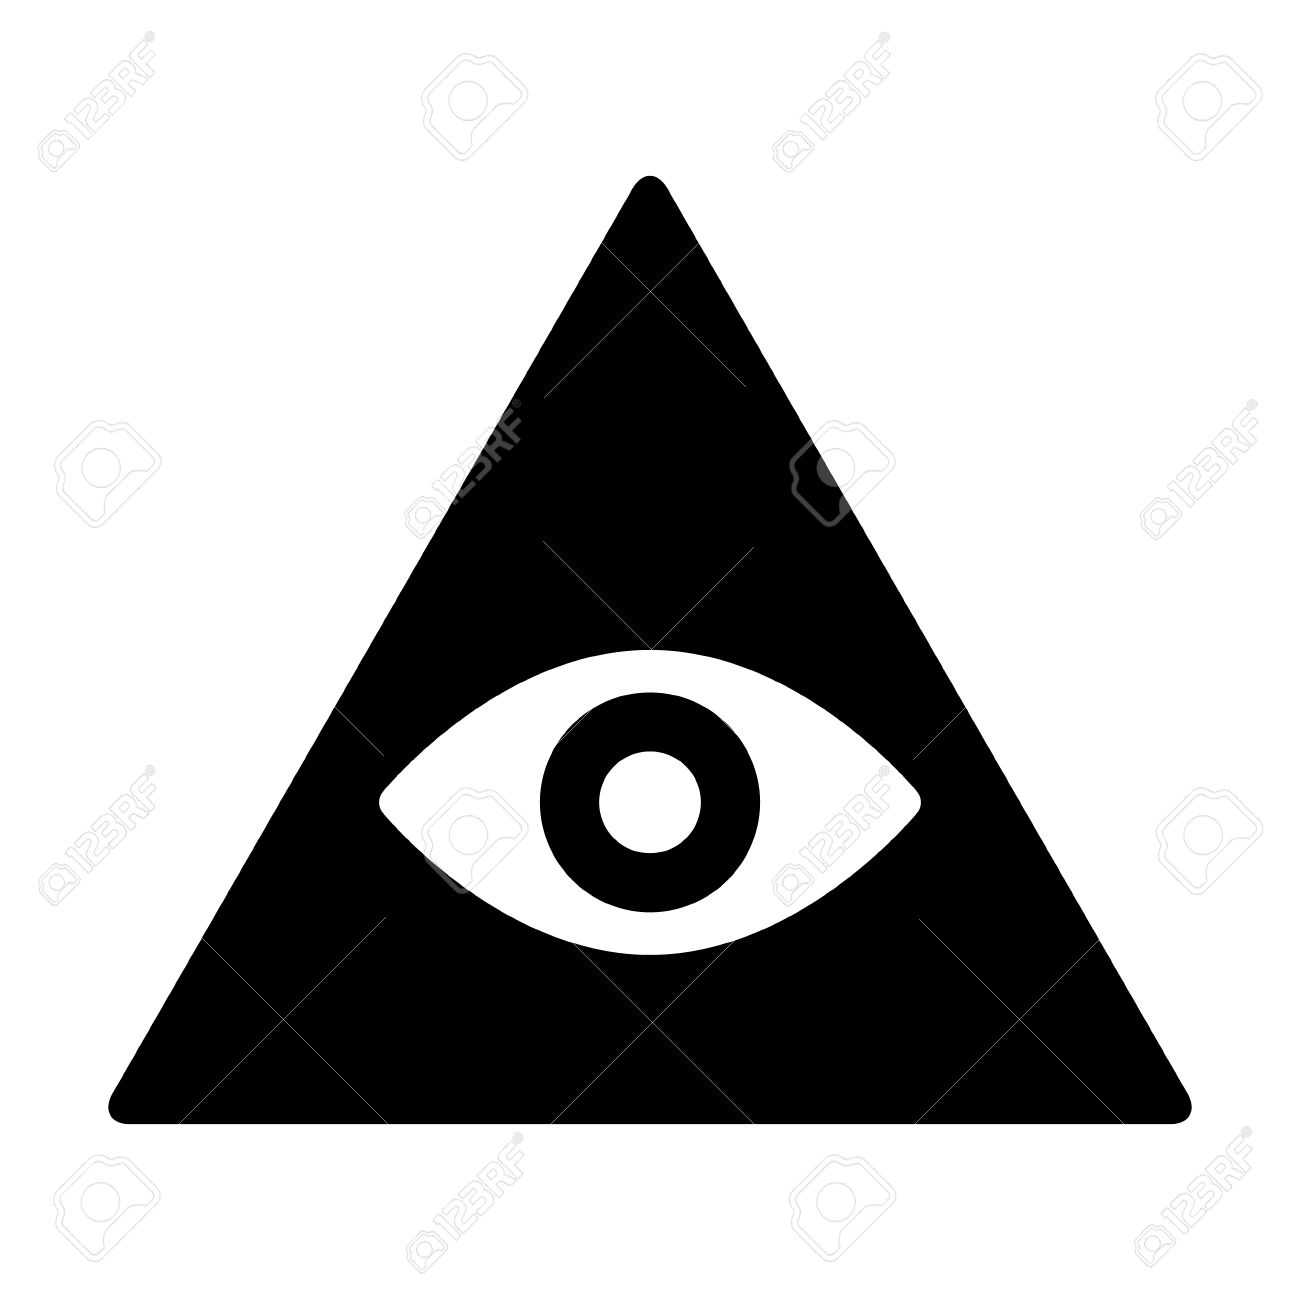 eye of providence or all seeing eye of god flat icon for apps rh 123rf com American Flag Vector eye of providence vector free